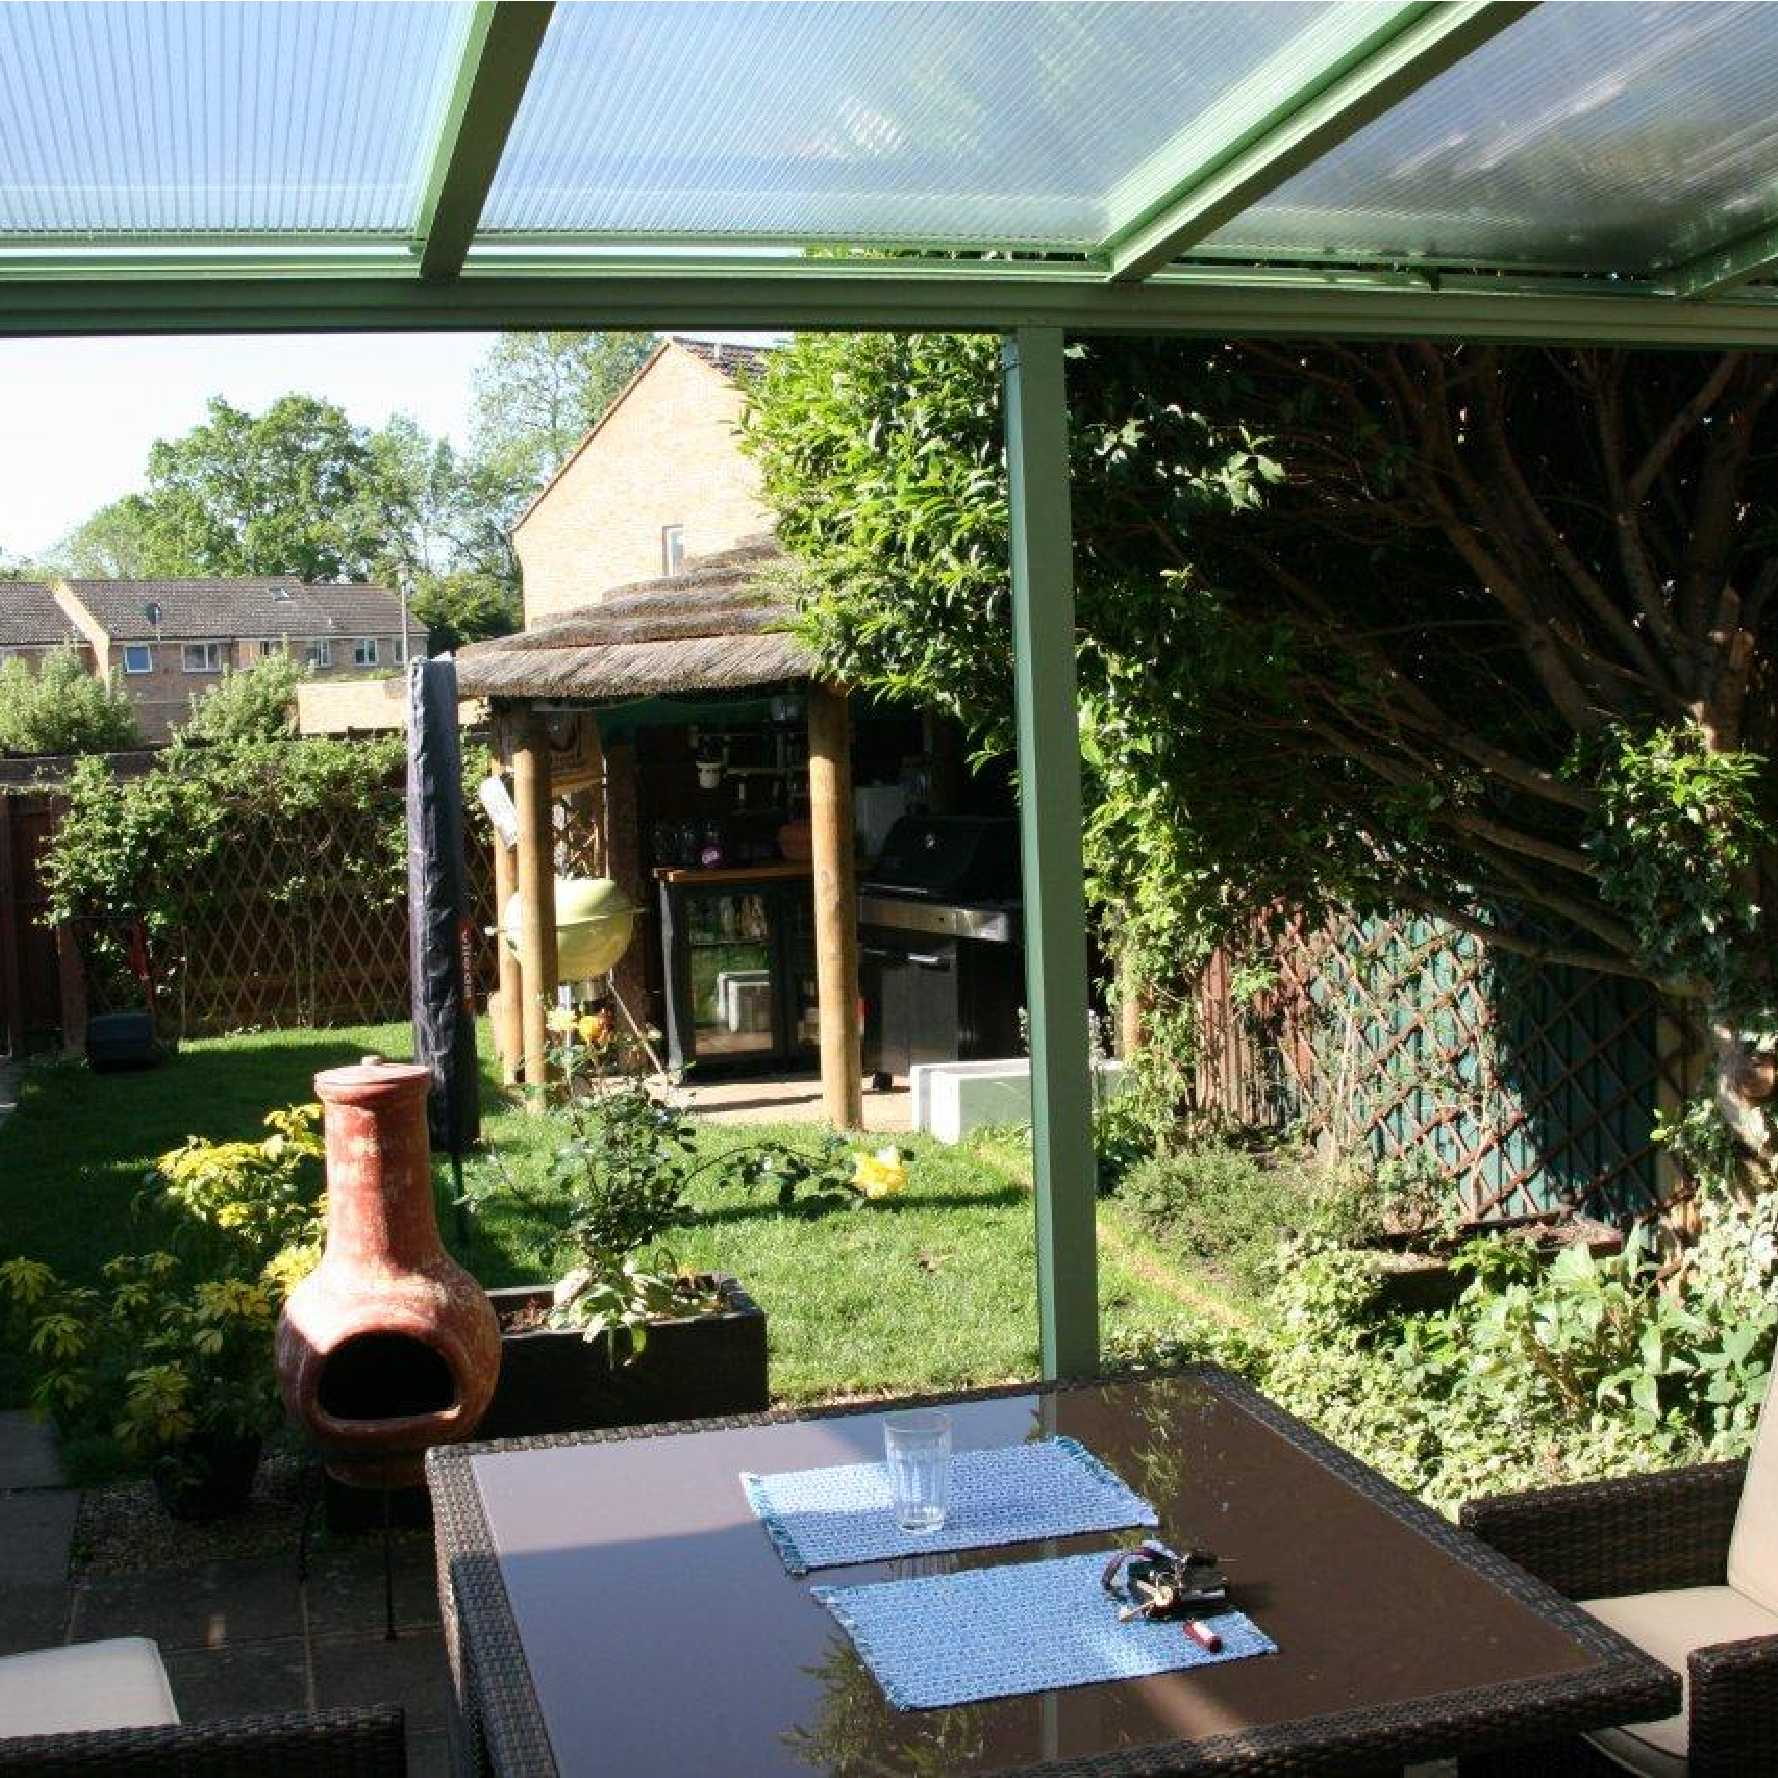 Affordable Omega Smart Lean-To Canopy with 16mm Polycarbonate Glazing - 10.6m (W) x 2.5m (P), (5) Supporting Posts